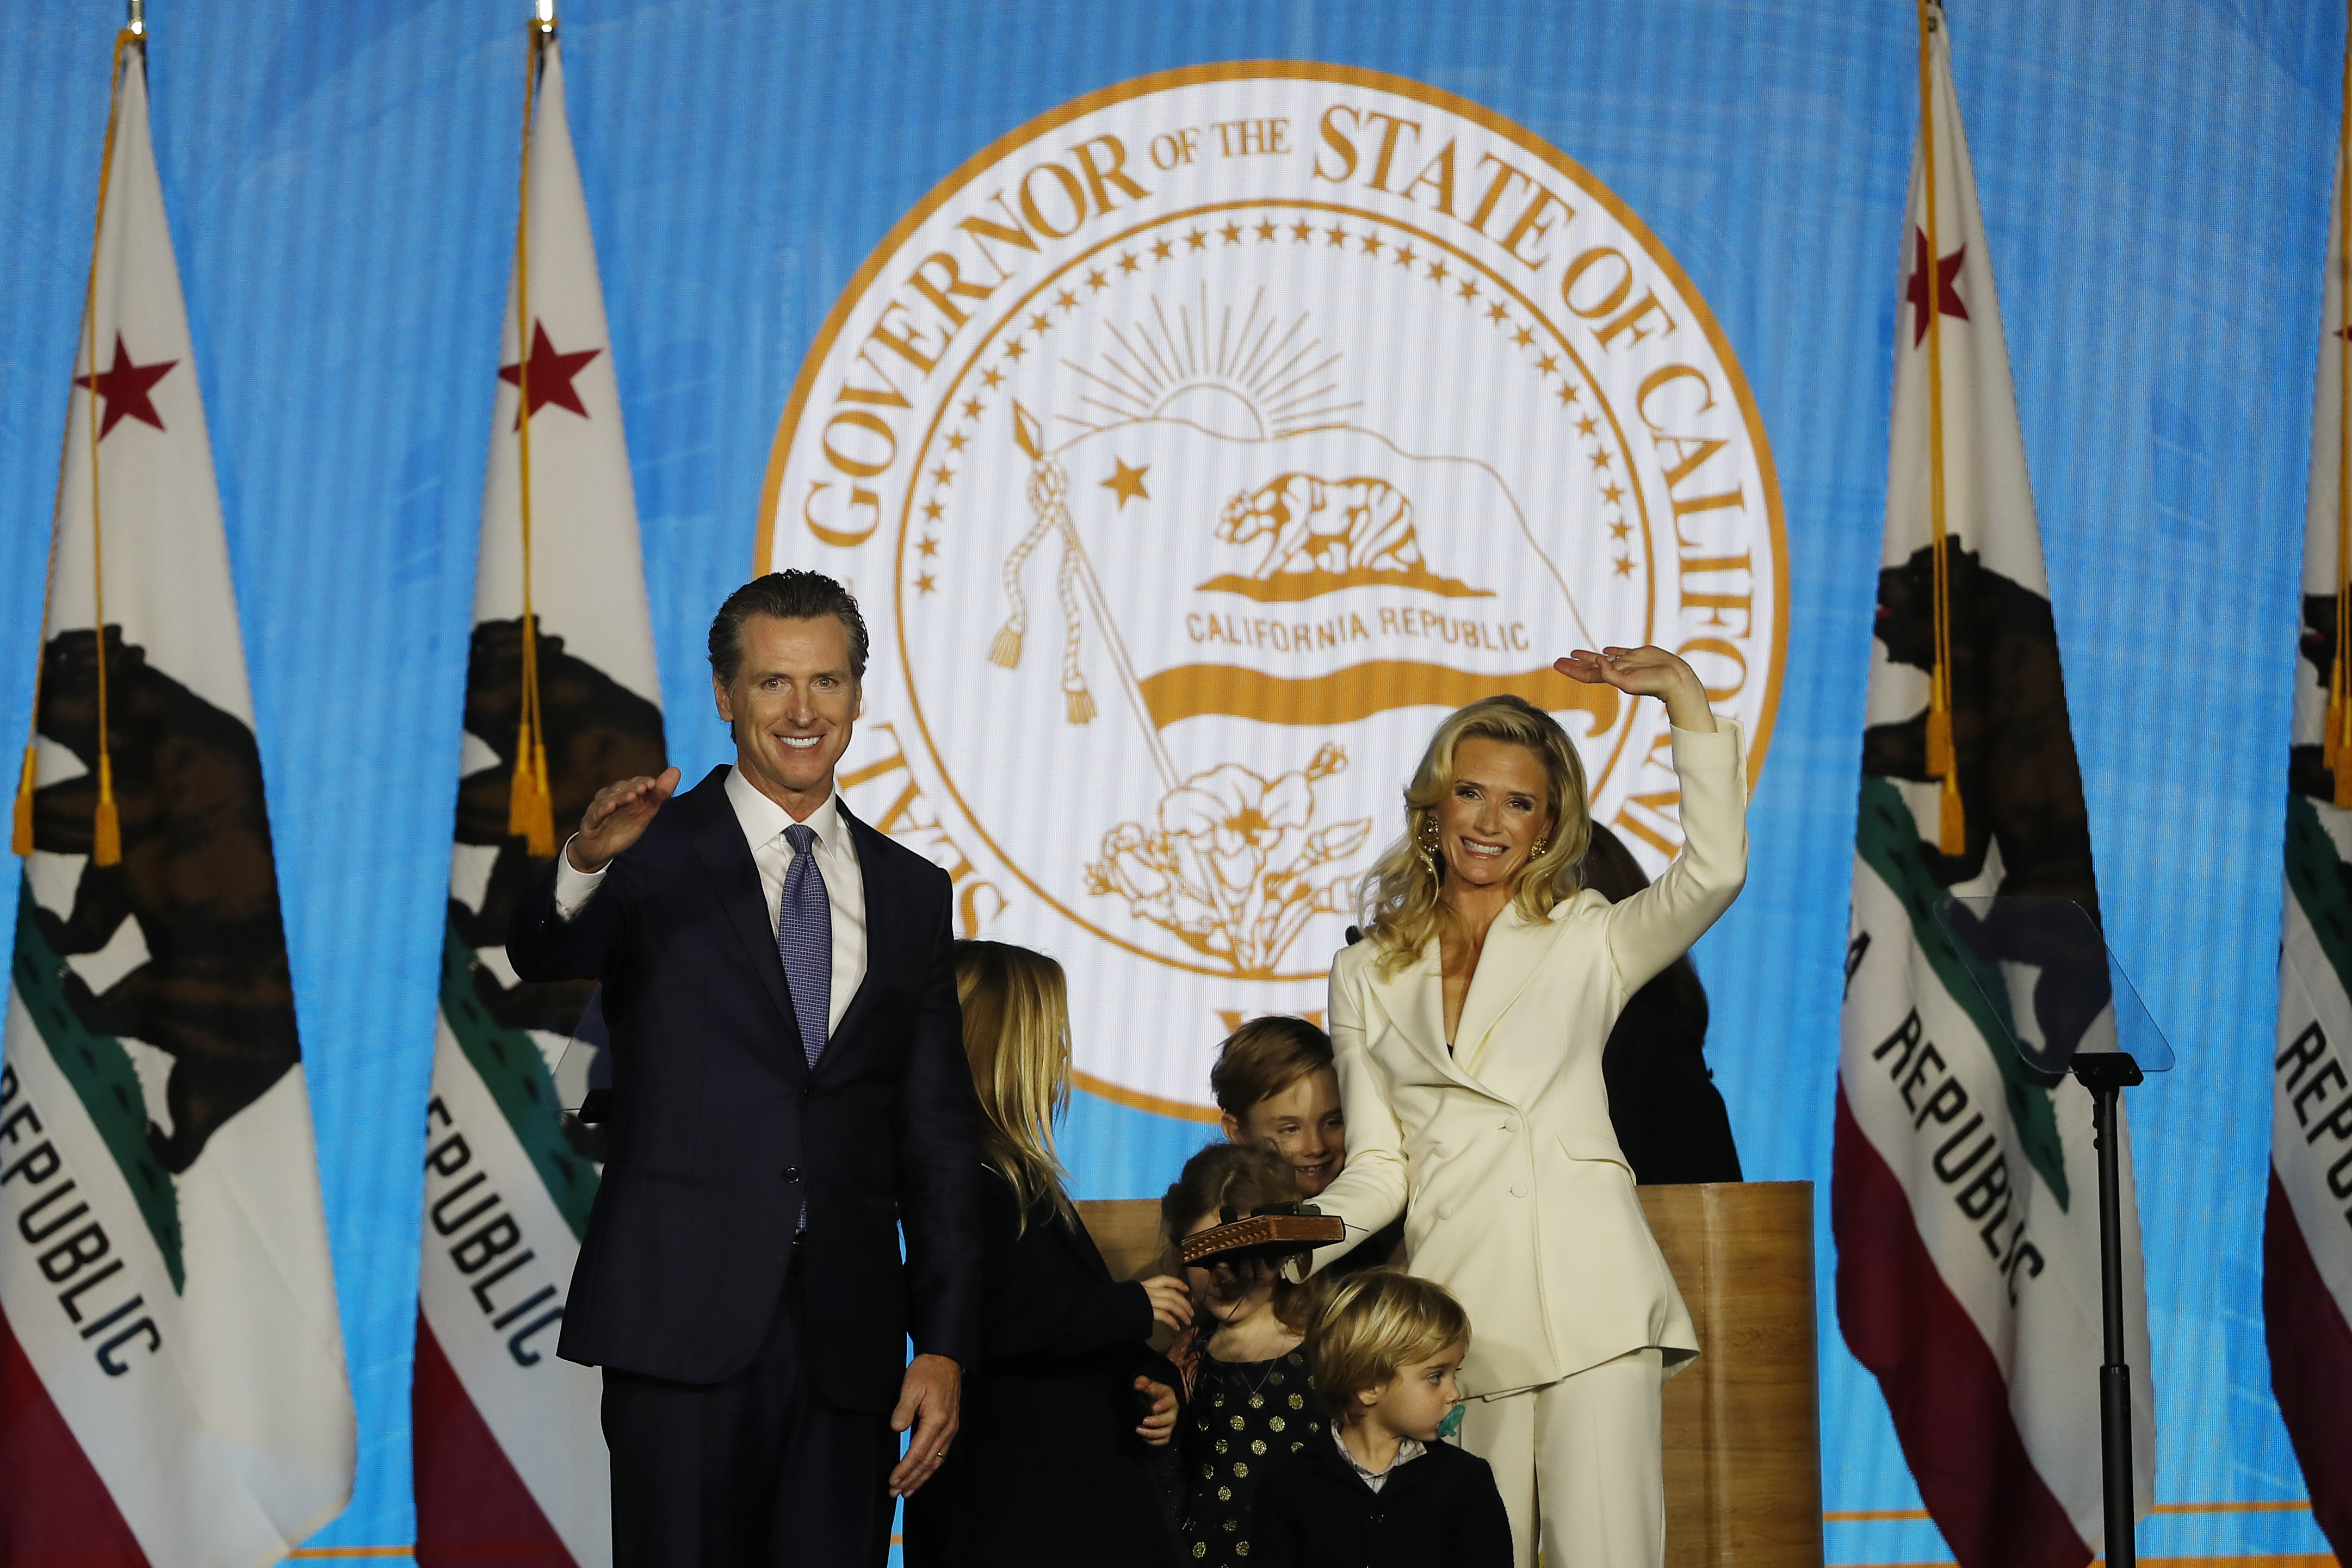 Governor Gavin Newsom and wife Jennifer Siebel Newsom gesture to the crowd after taking his oath of office on Jan. 7, 2019 in Sacramento, Calif.